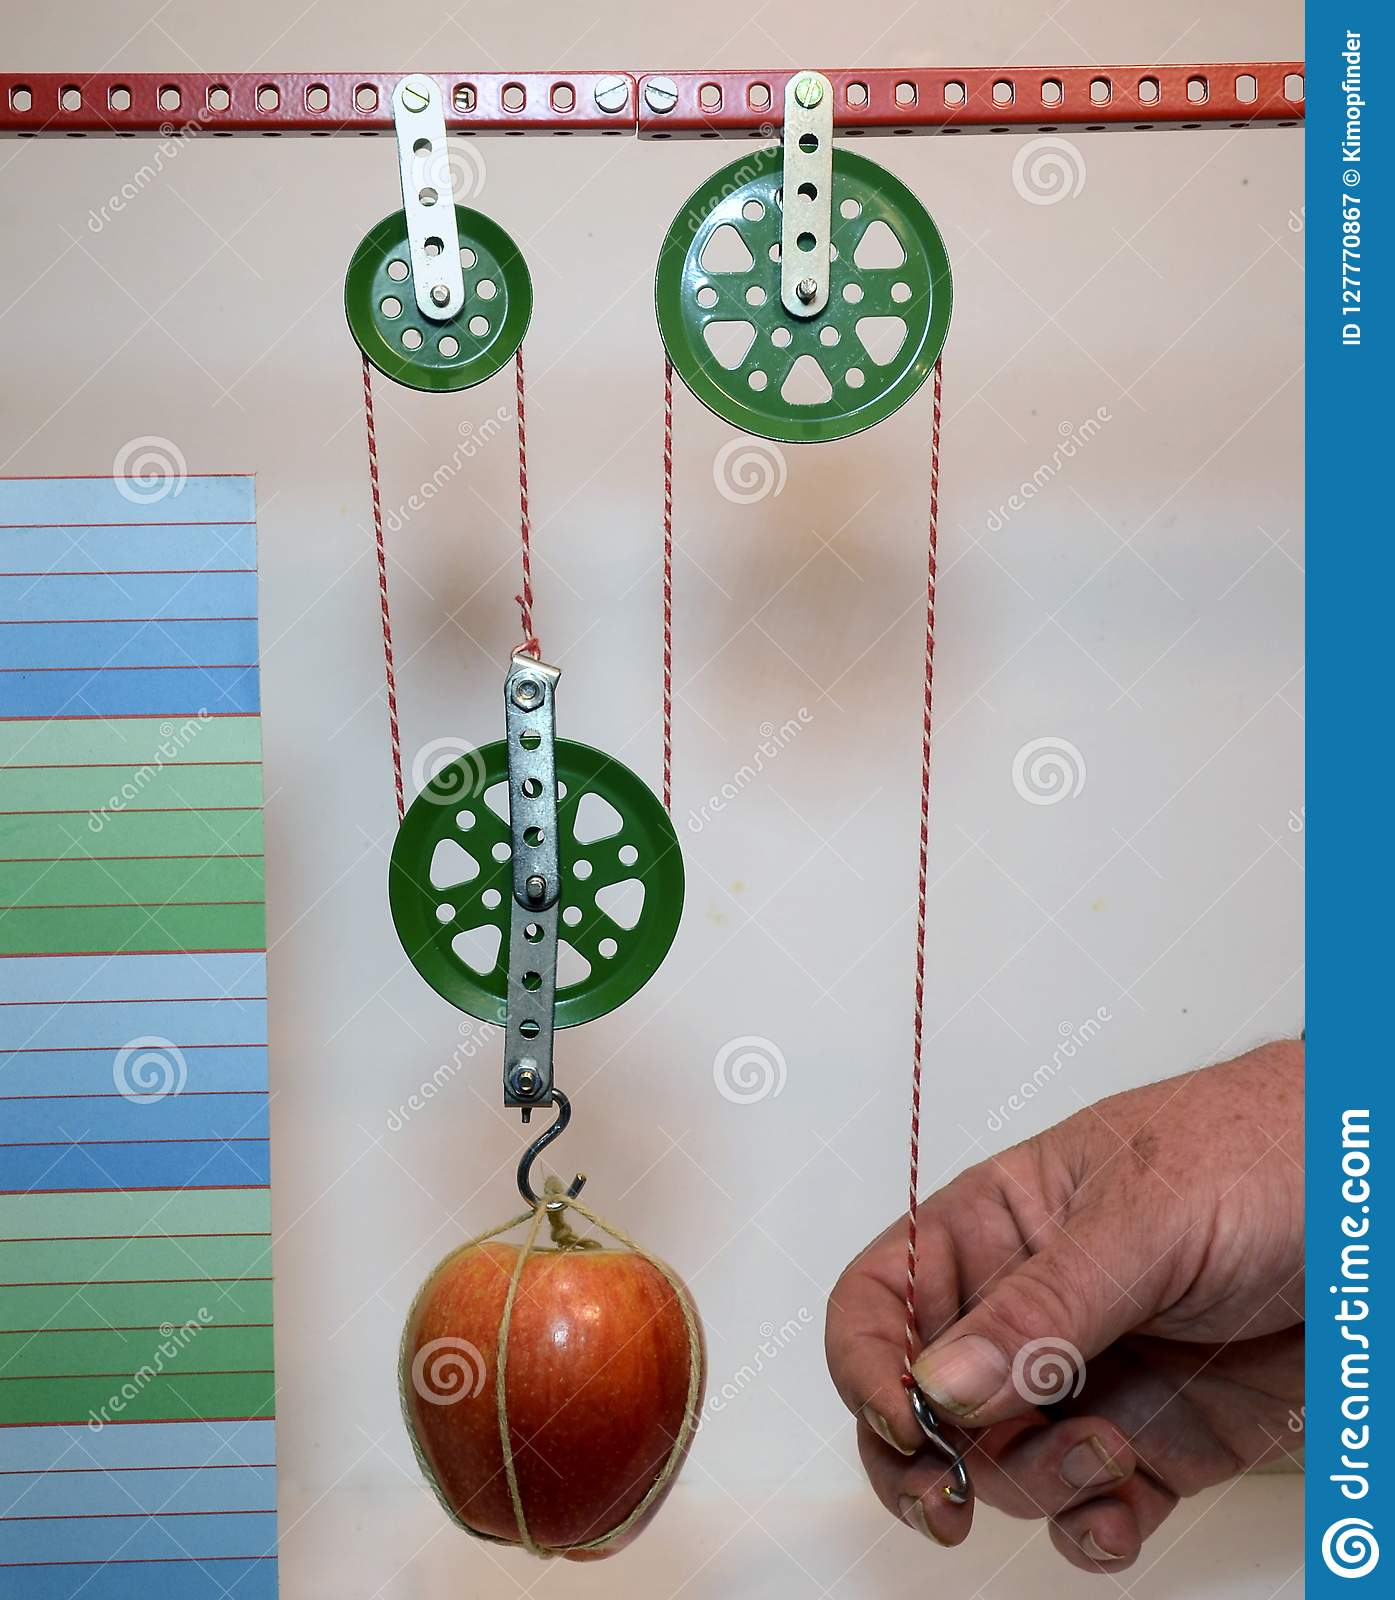 Enhanced Single Pulley Block Demo Stock Image - Image of pulley